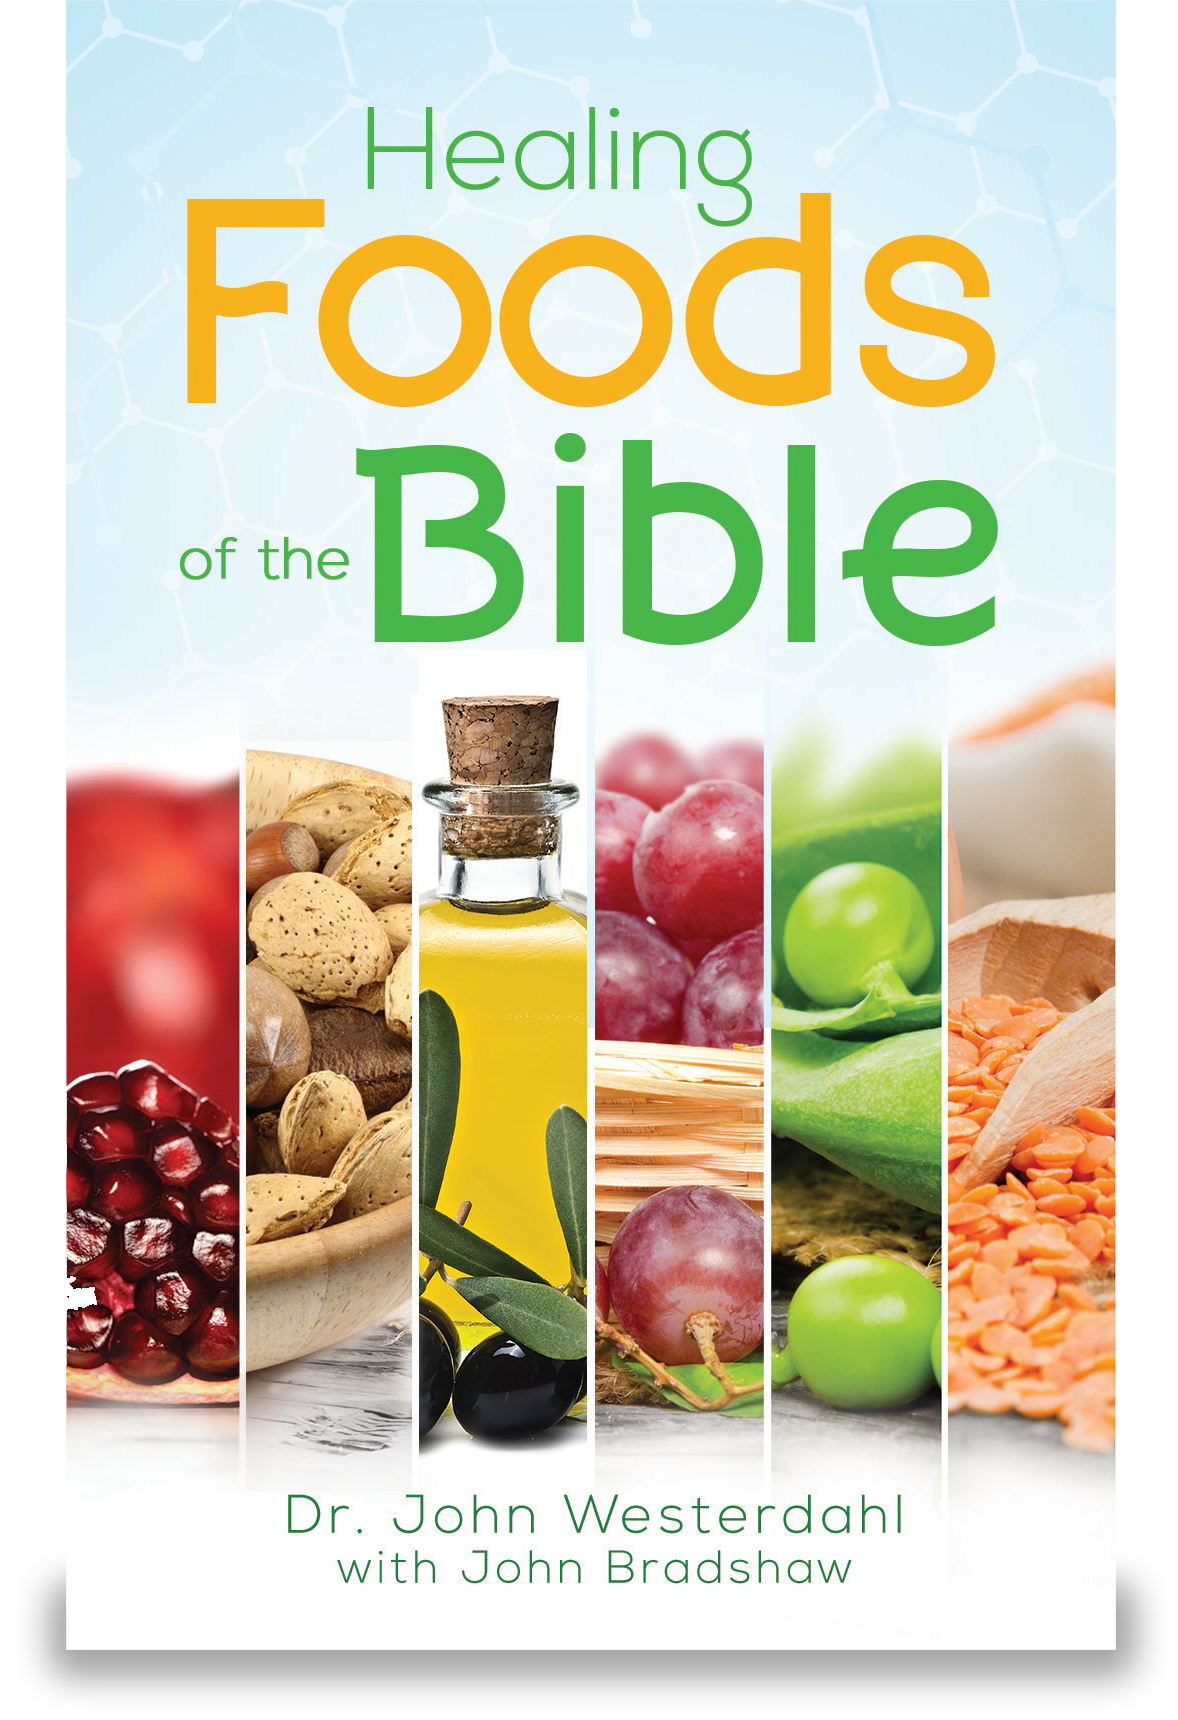 Health Foods of the Bible, Cover v 1 -Proof 3.png